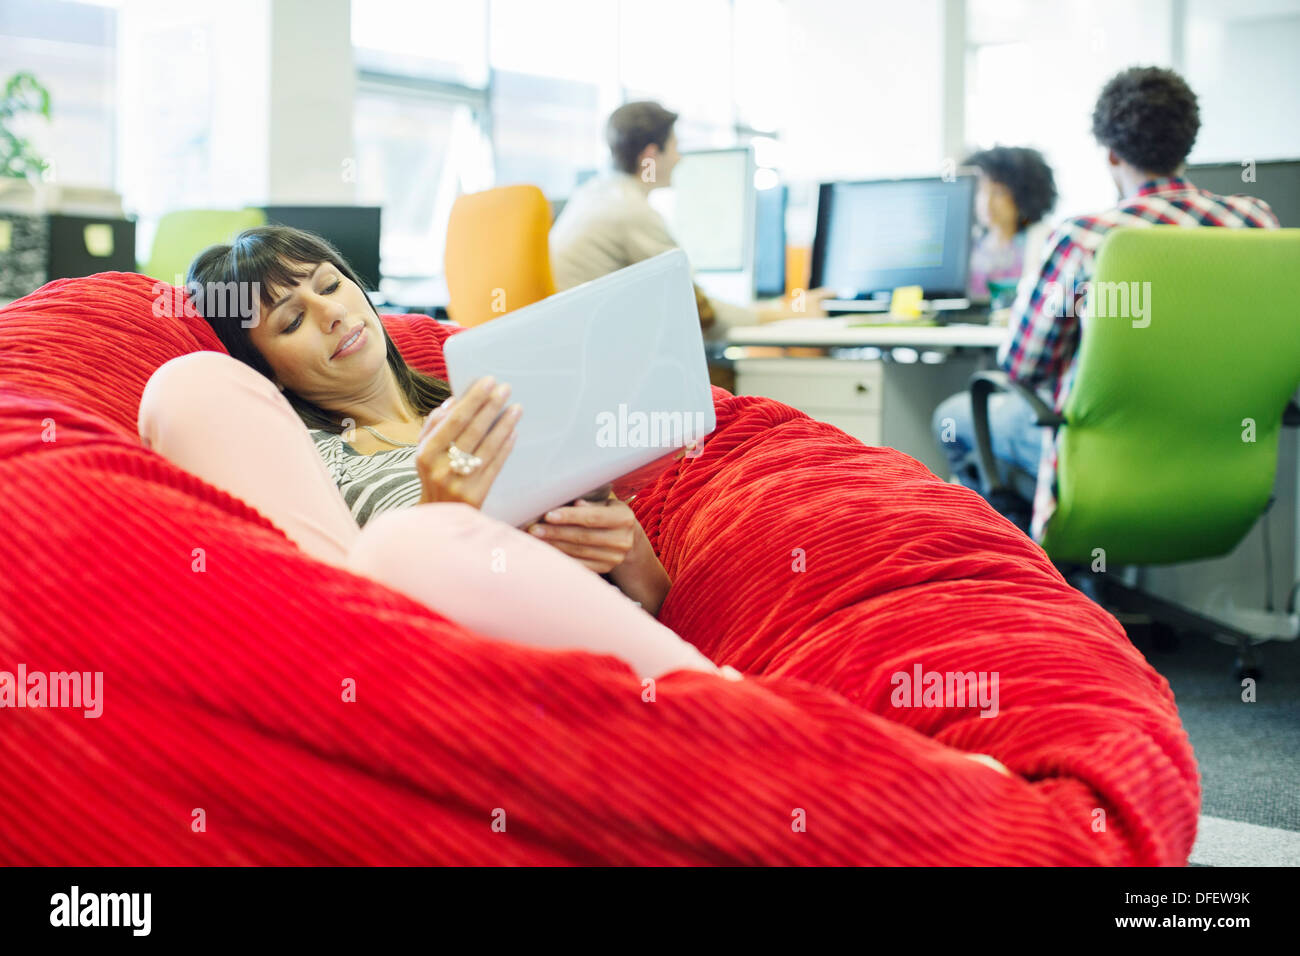 Businesswoman using laptop in bean bag chair in office - Stock Image